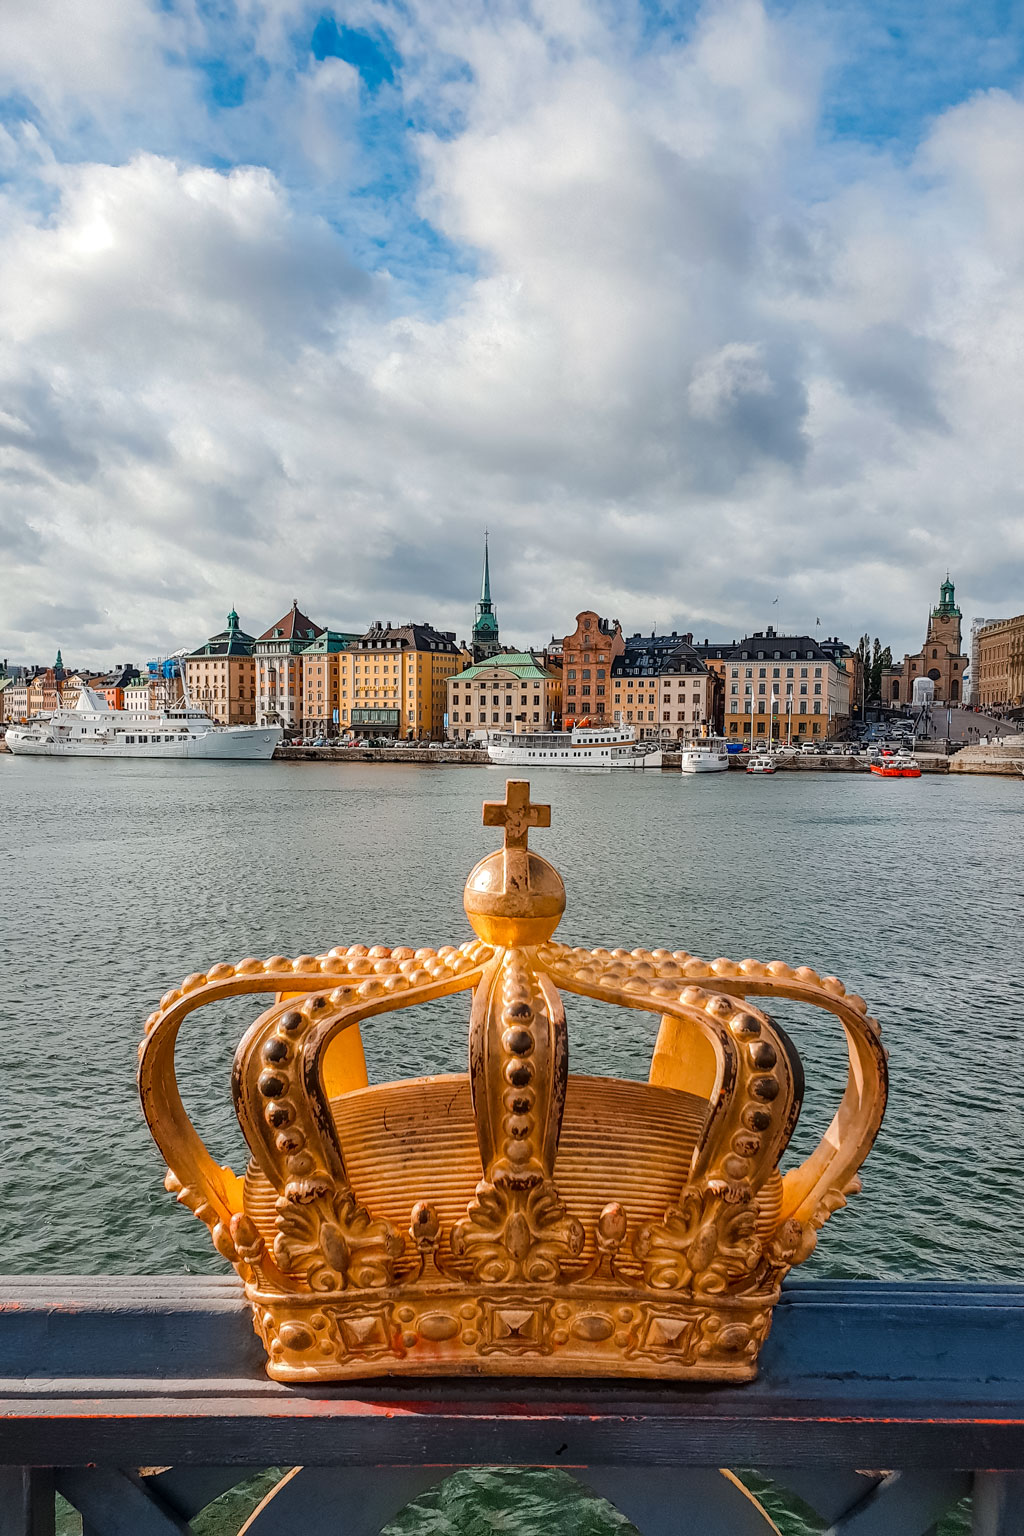 Golden Crown on the Skeppsholmen Bridge